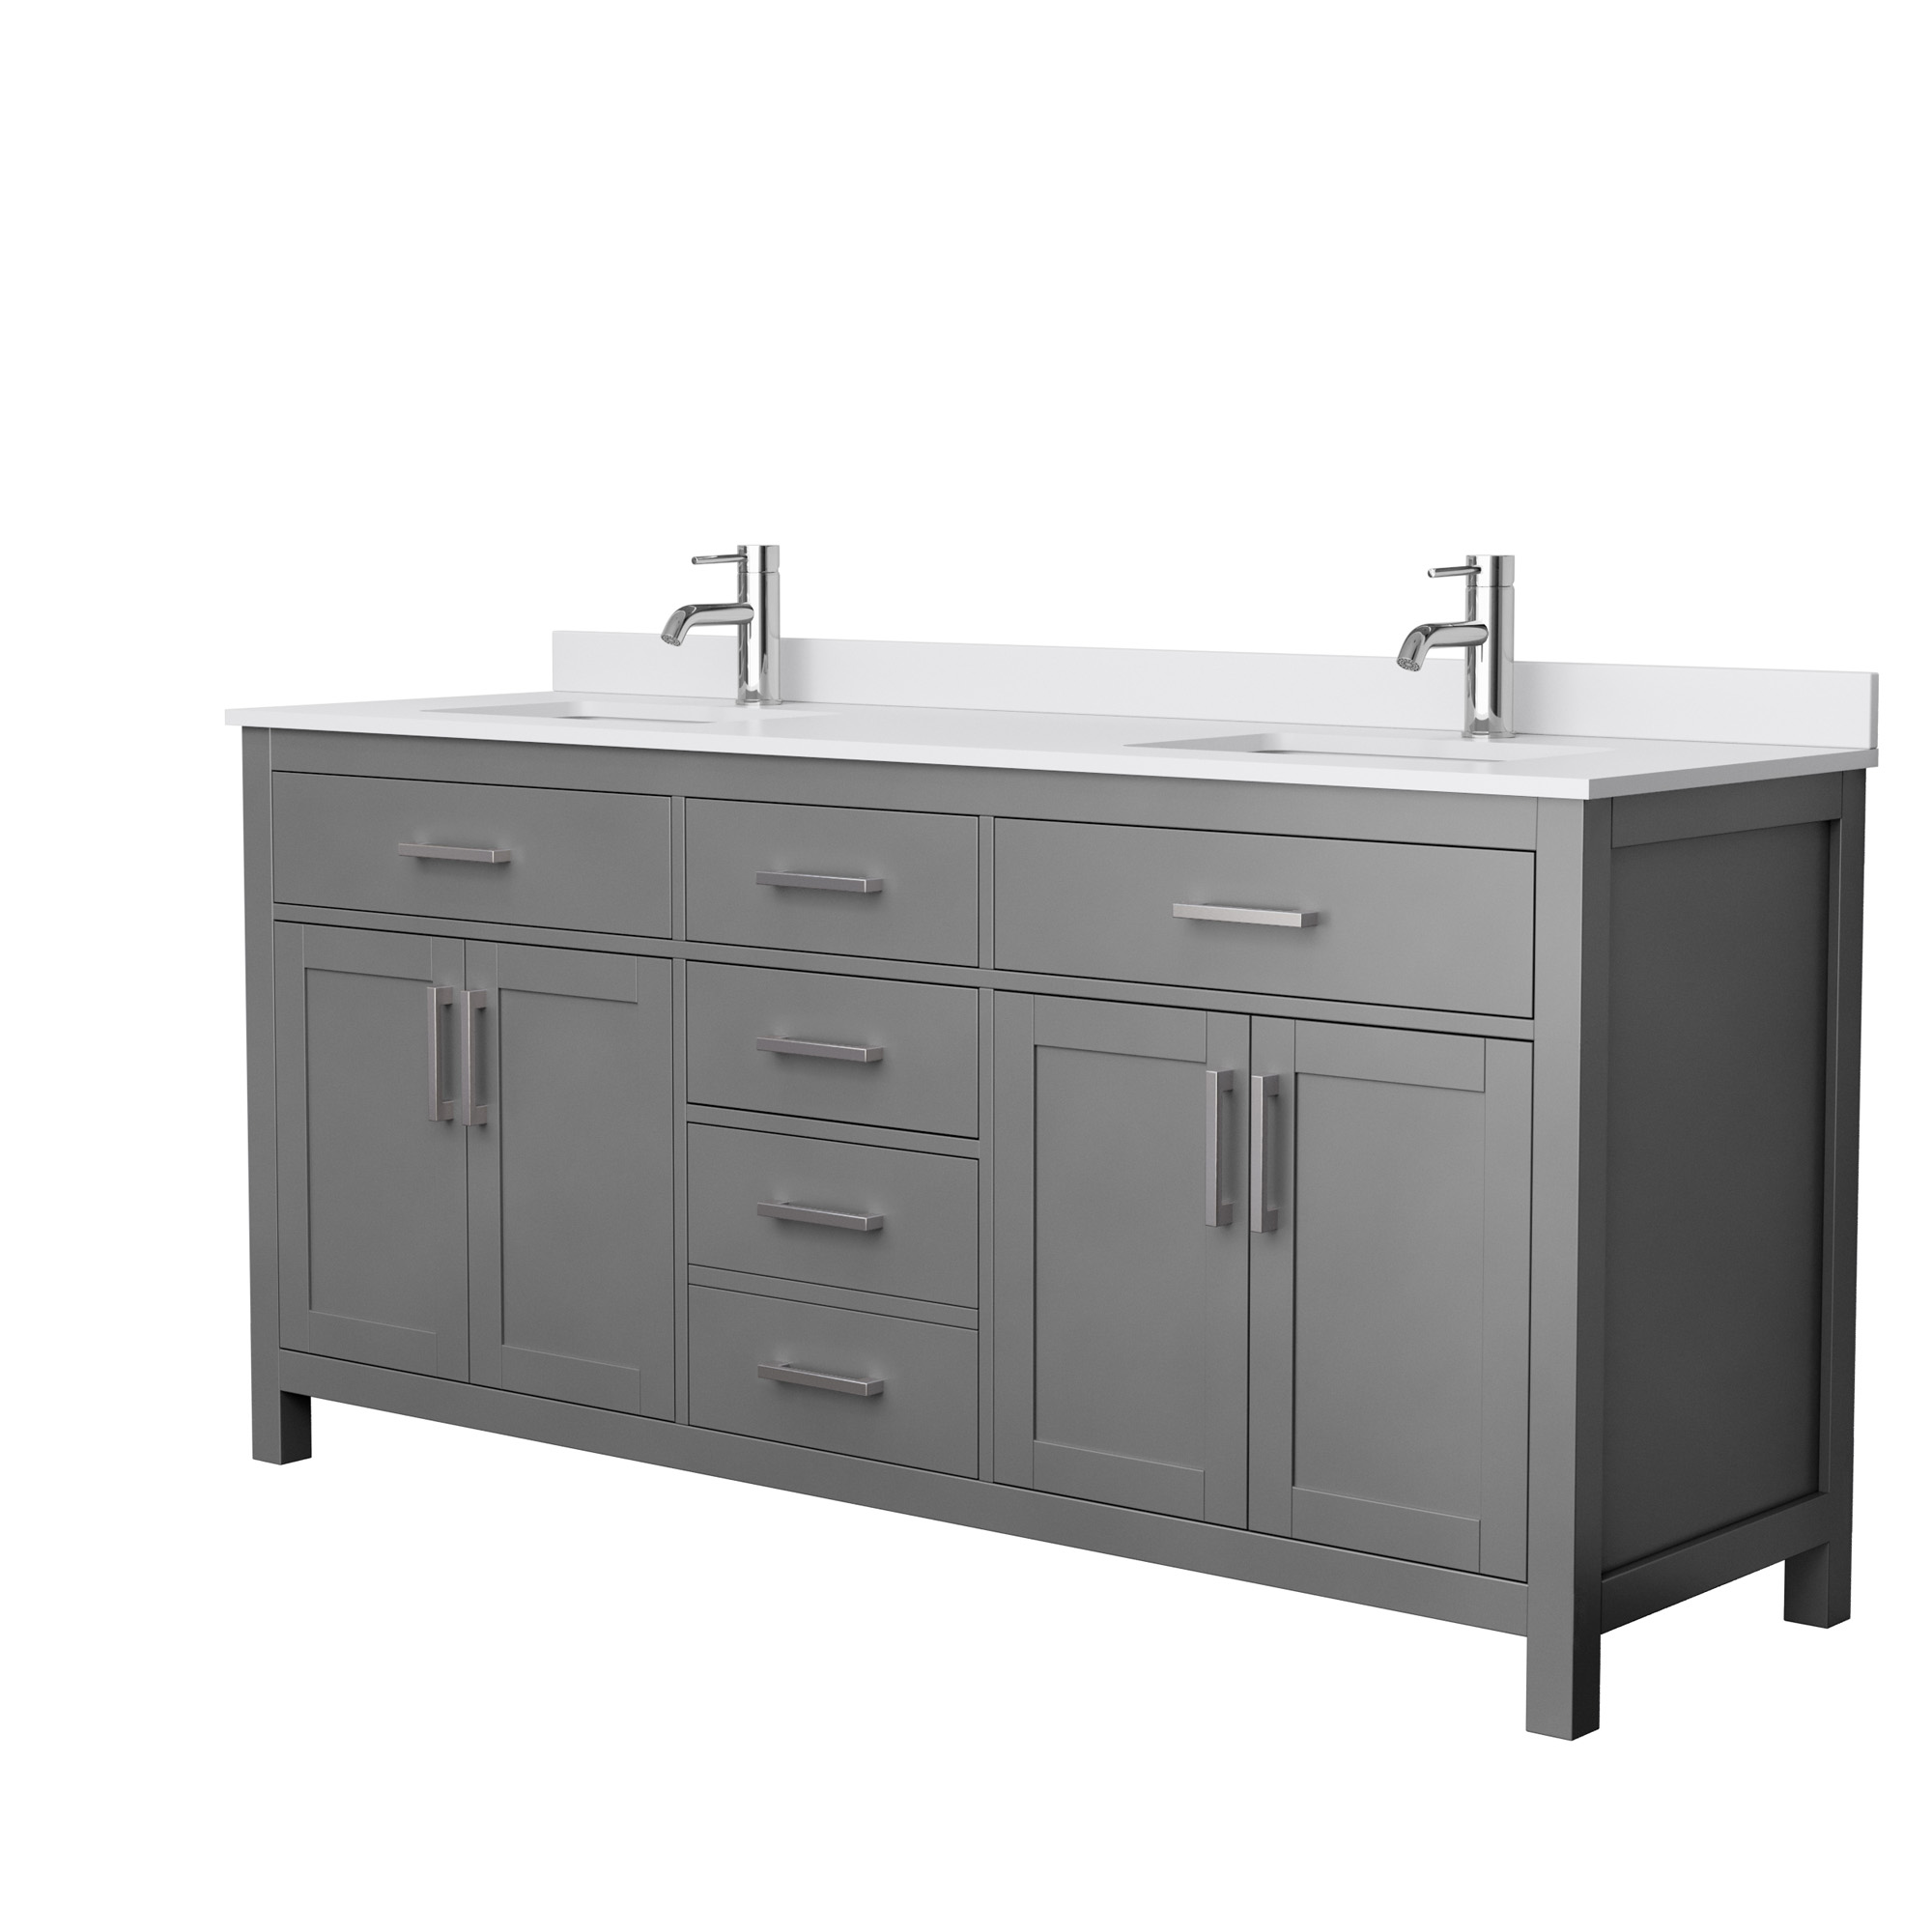 beckett 72 double bathroom vanity in dark gray white cultured marble countertop undermount square sinks and no mirror